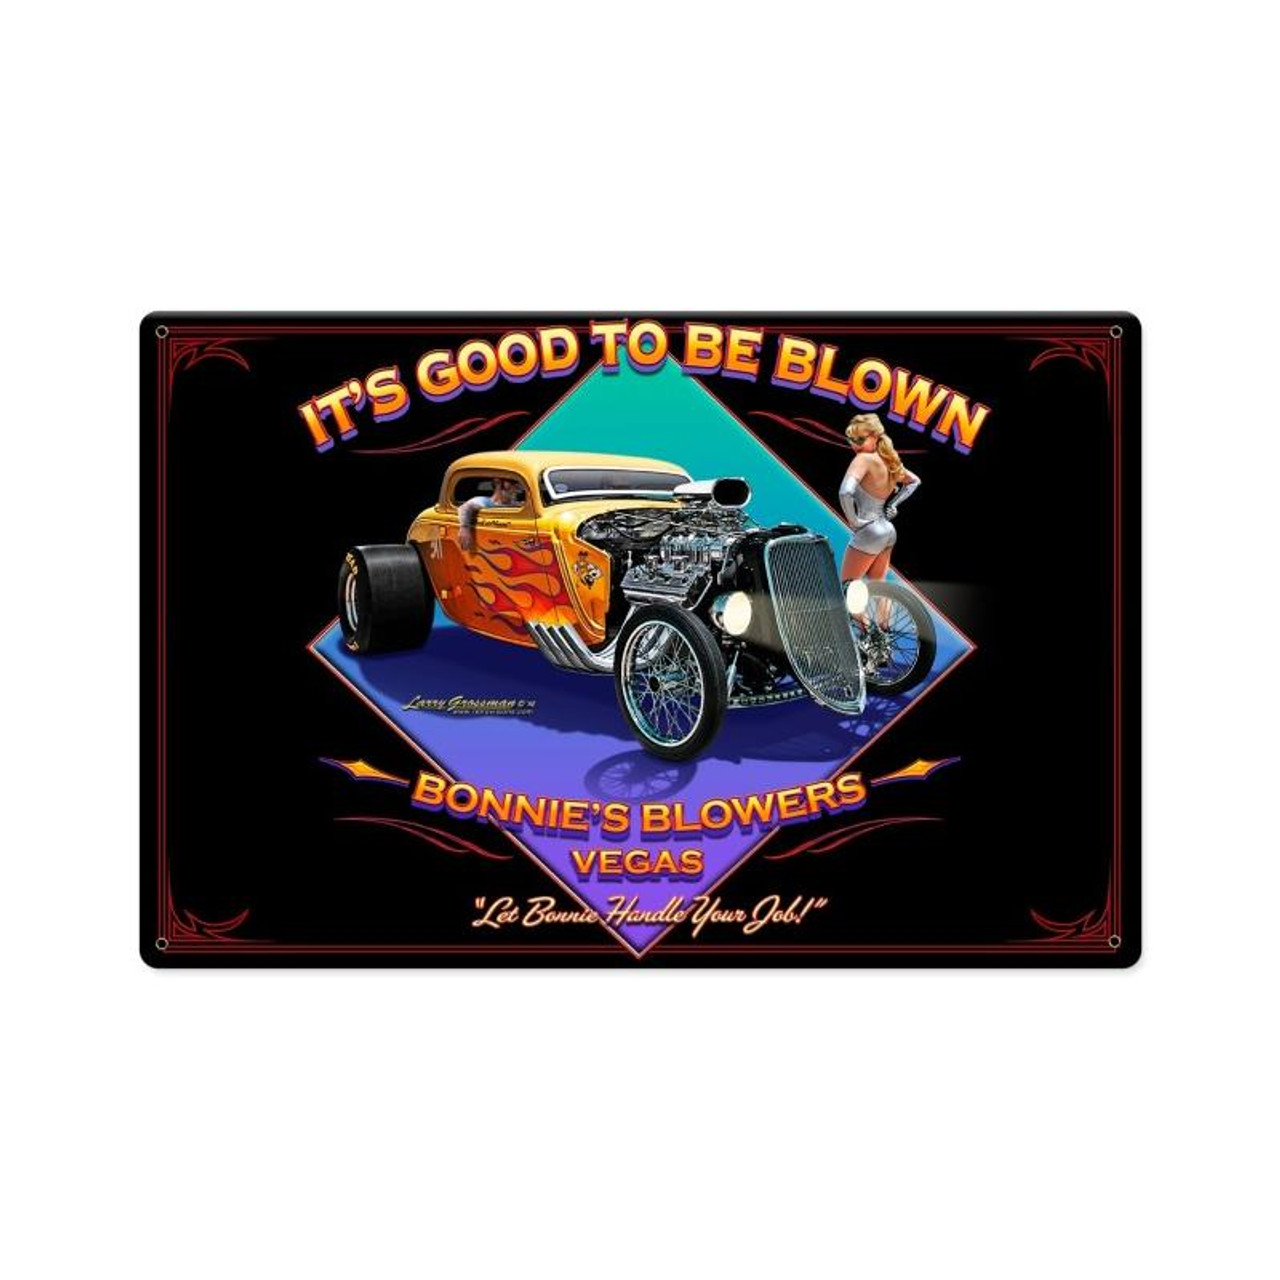 Blown Metal Sign 18 x 12 Inches